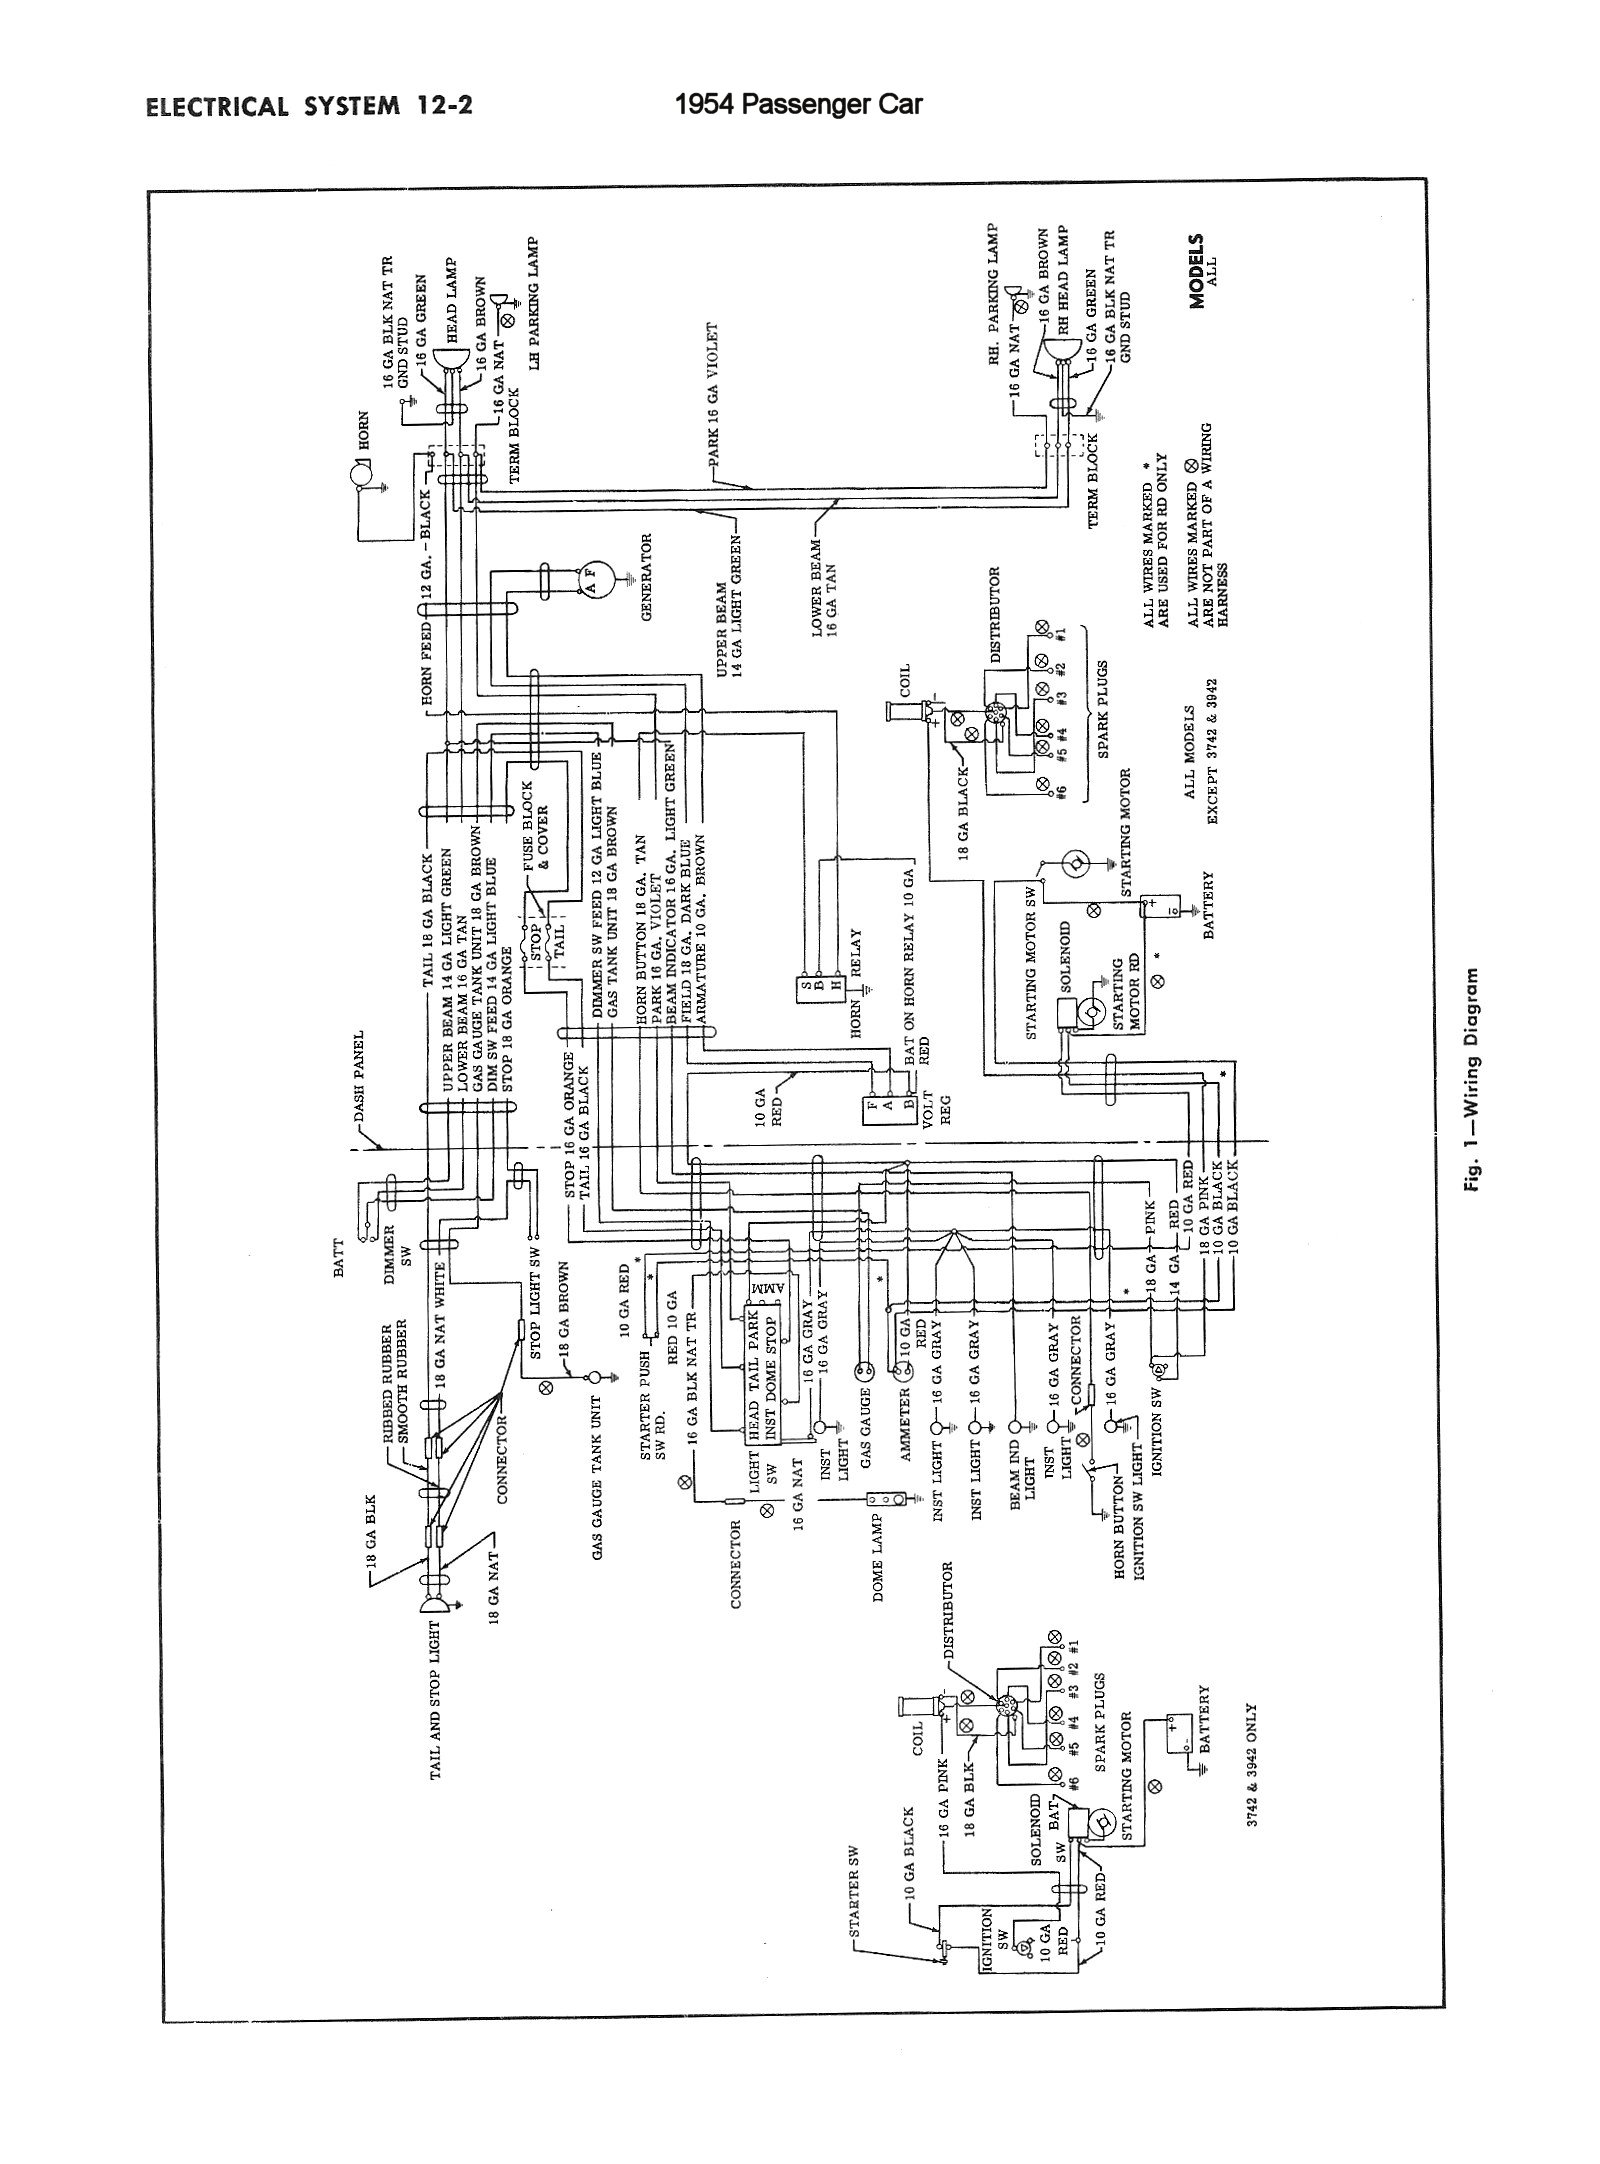 Home Wiring In 1954 Circuit Diagram Symbols Waterfall Trusted Schematics Diagrams Chevy Rh Oldcarmanualproject Com Codes